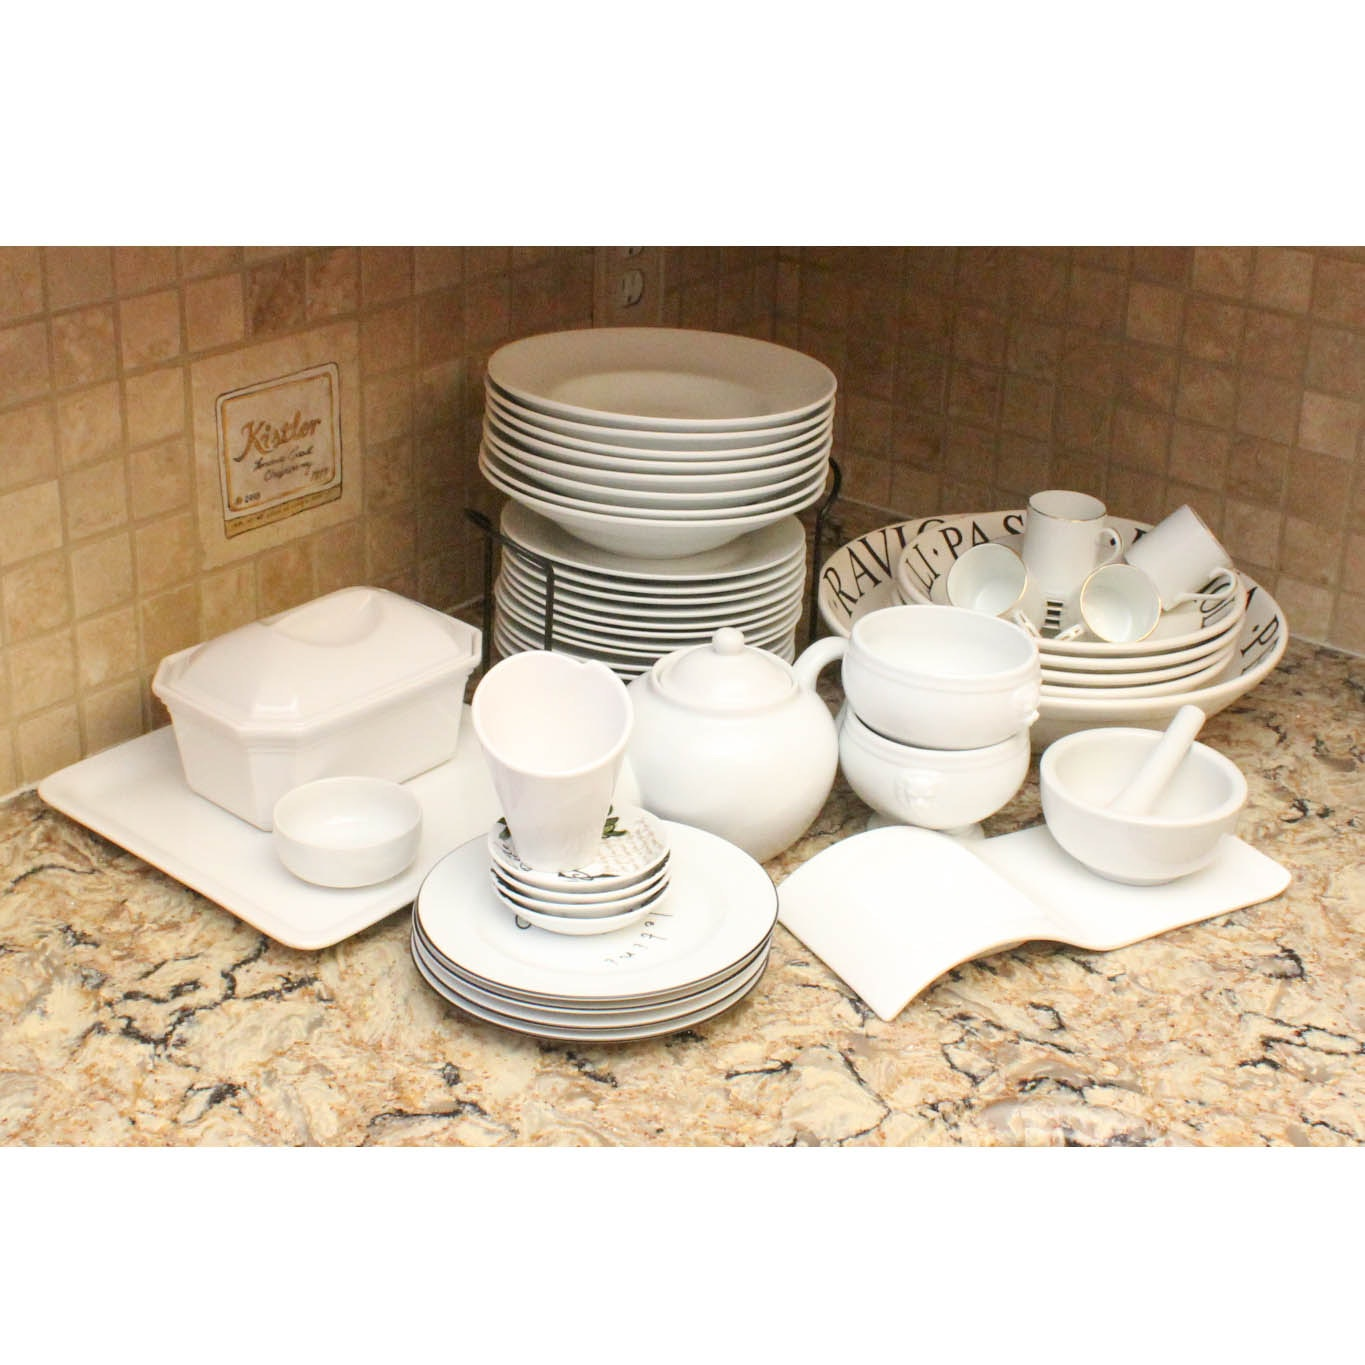 Ceramic Tableware By Revol, Pottery Barn, And More ...